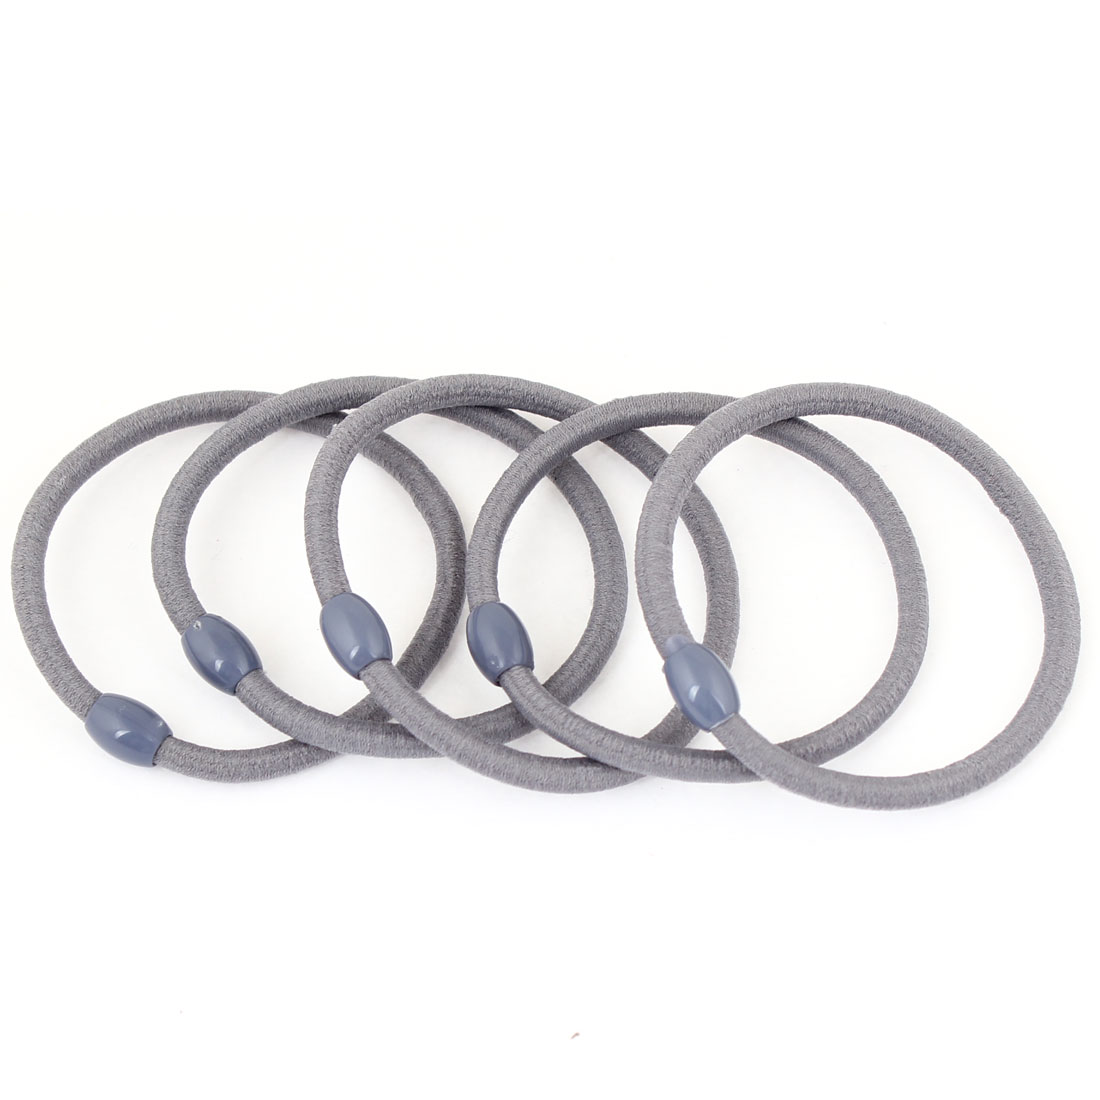 5 Pcs Elastic Gray Ellipse Bead Ponytail Holder Hair Band